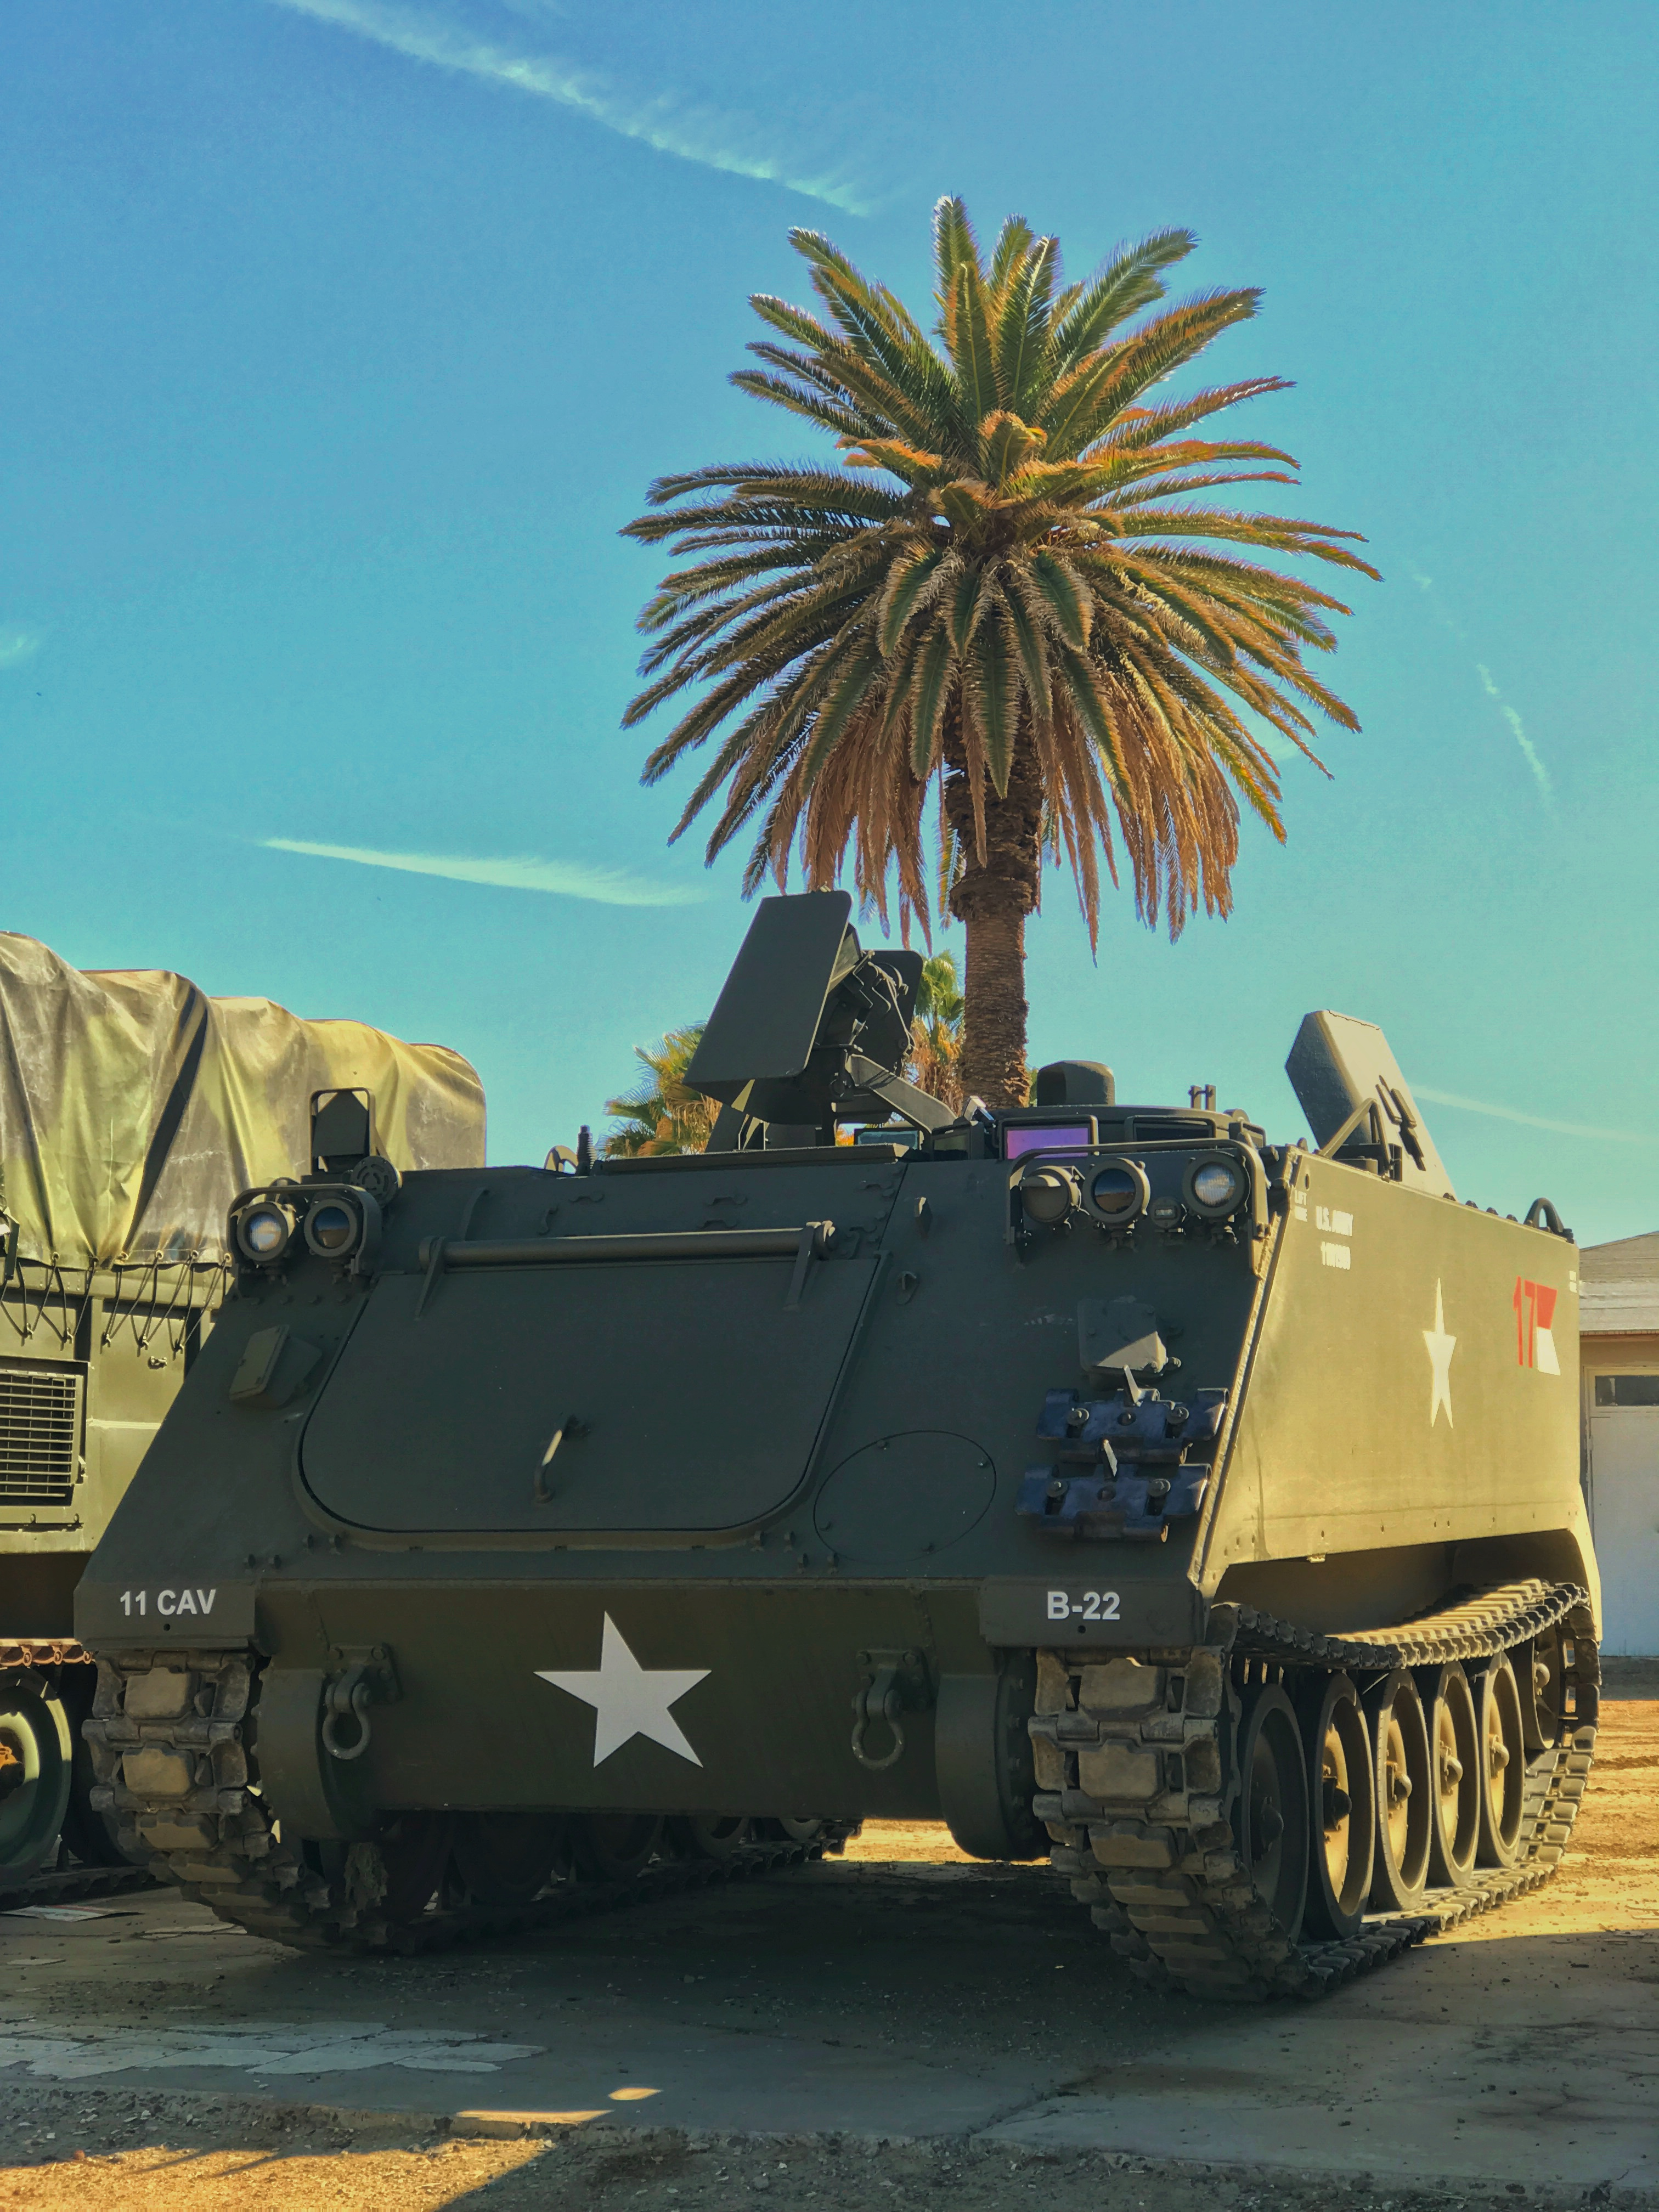 M548 and M113